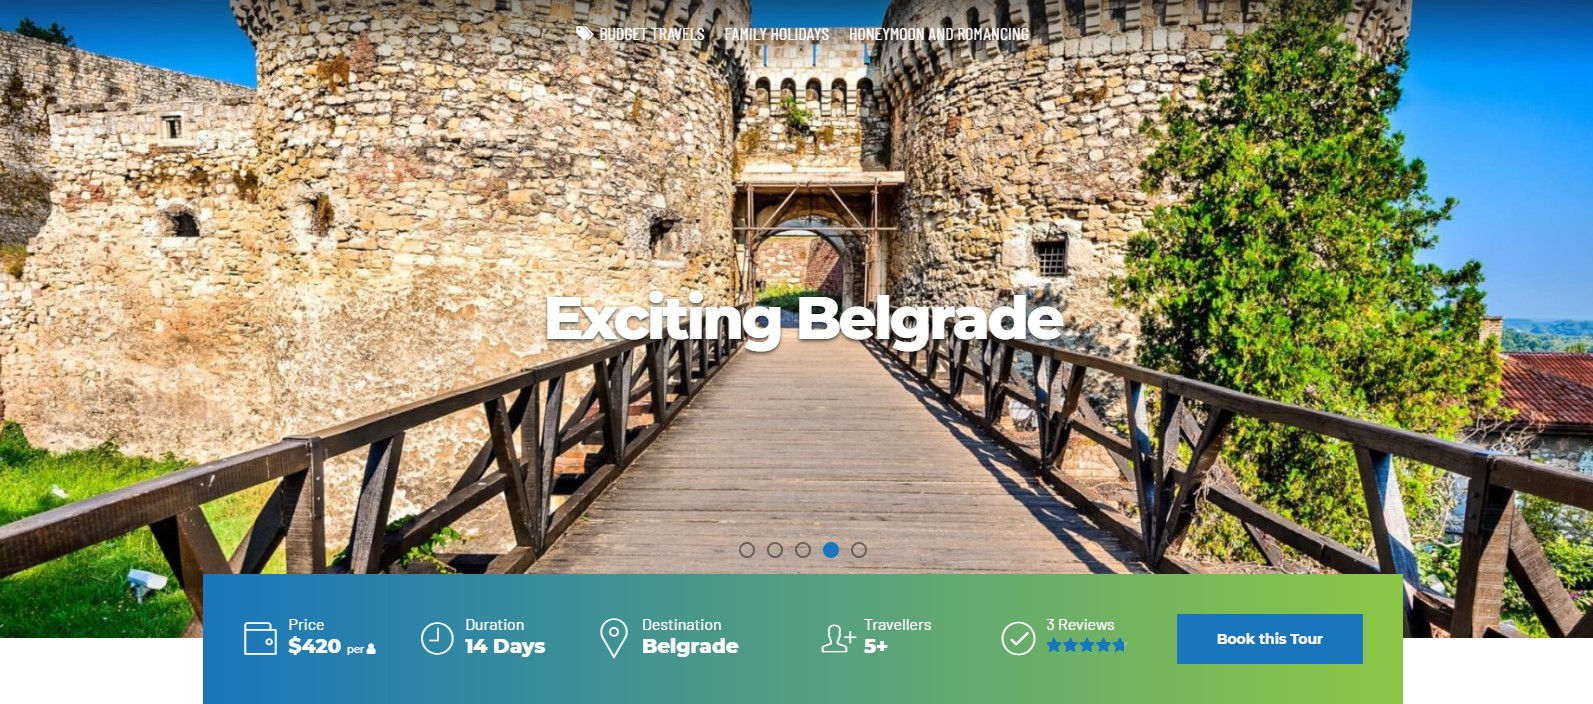 http://documentation.bold-themes.com/travelicious/wp-content/uploads/sites/37/2018/10/tour-single-header-layout-content.jpg